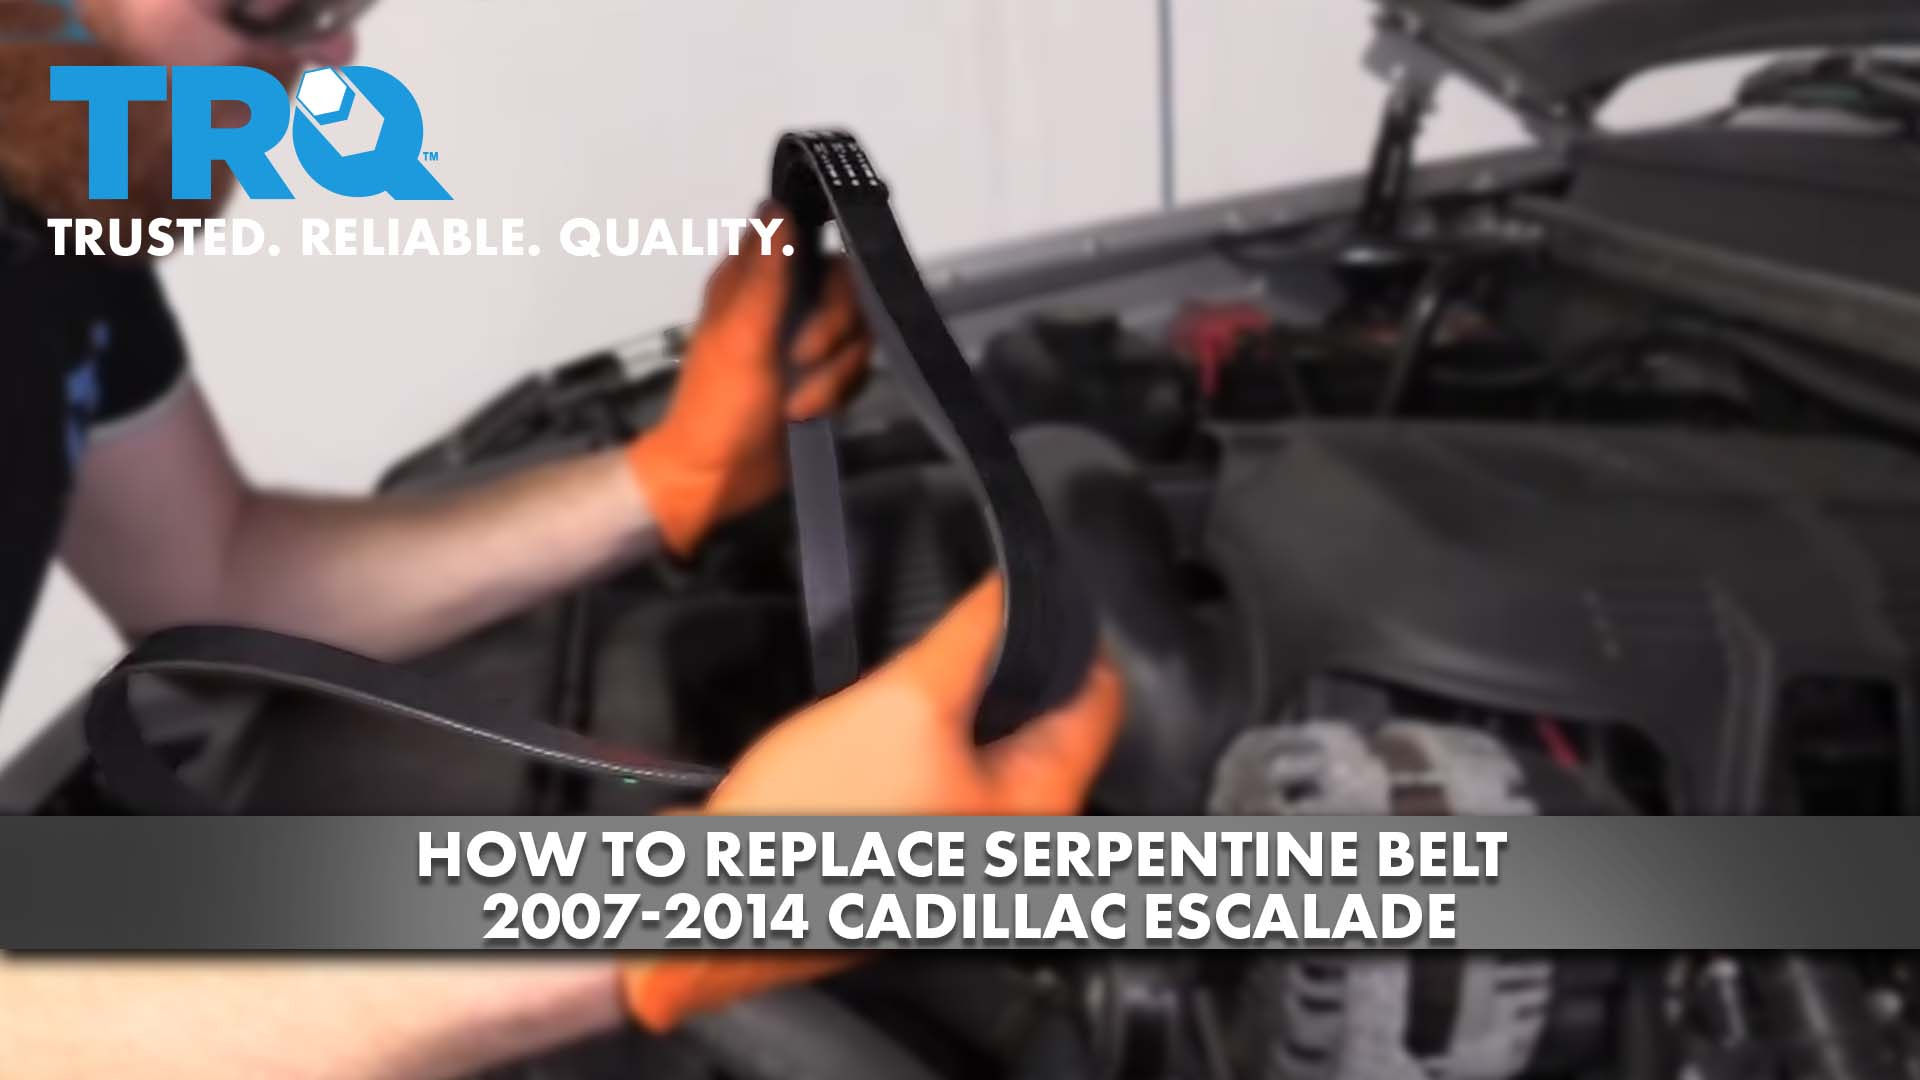 How To Replace Serpentine Belt 2007-14 Cadillac Escalade